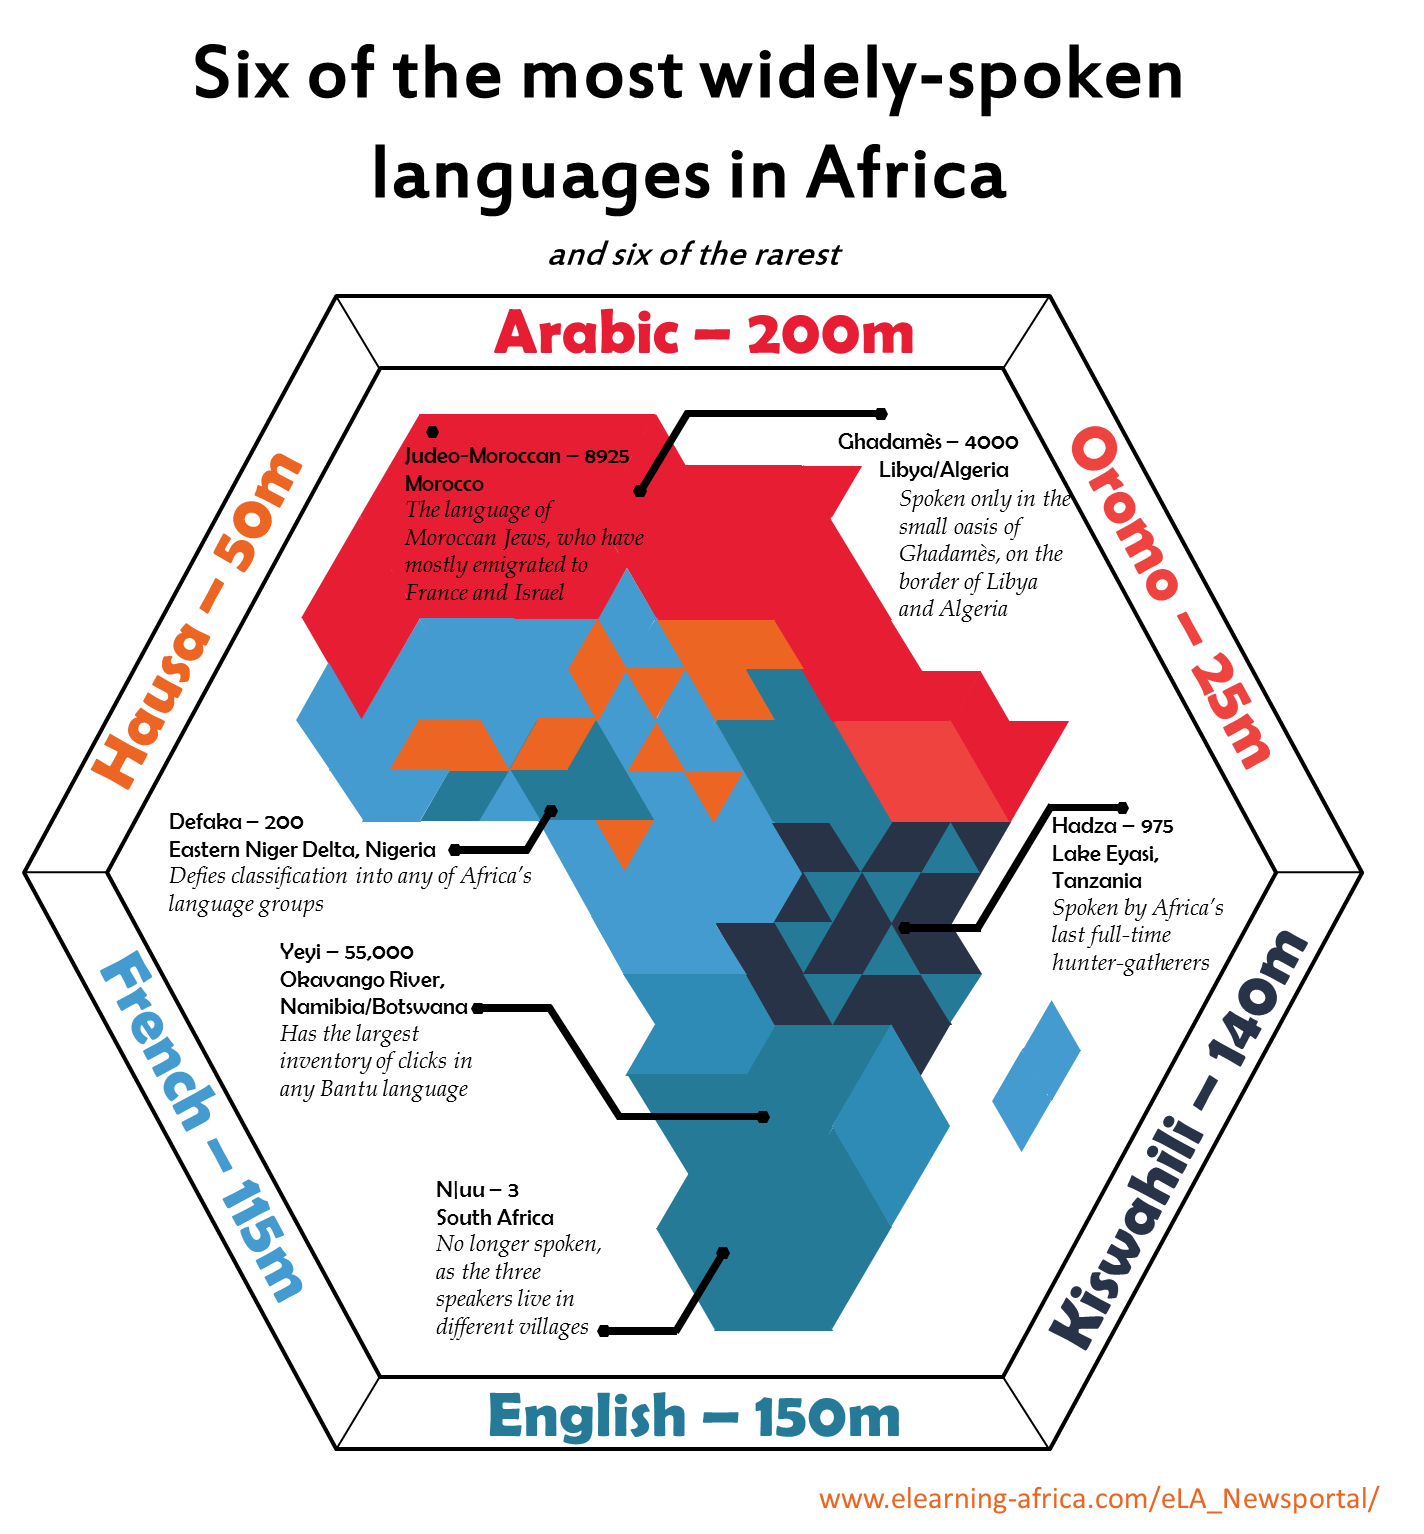 This infographic teaches about the different languages that are in